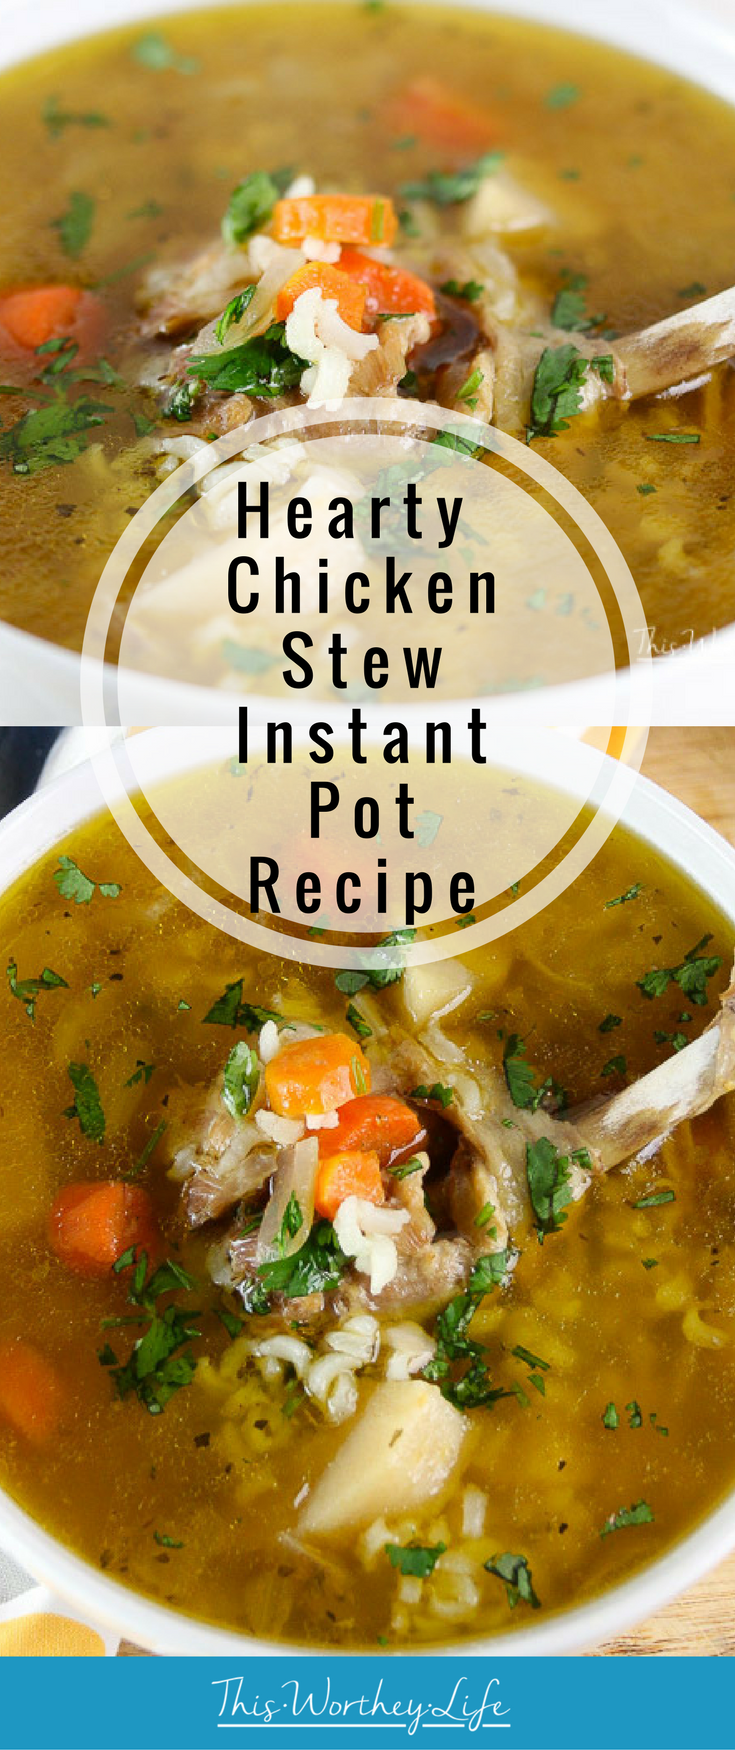 Comfort food in a bowl is a great way to start warm during those cold and long winter days. Try our homemade Chicken Stew, made in the Instant Pot. Not only is this a quick way to make a homemade chicken soup, but it's full of delicious ingredients, giving you all the comforts of home in a warm bowl.